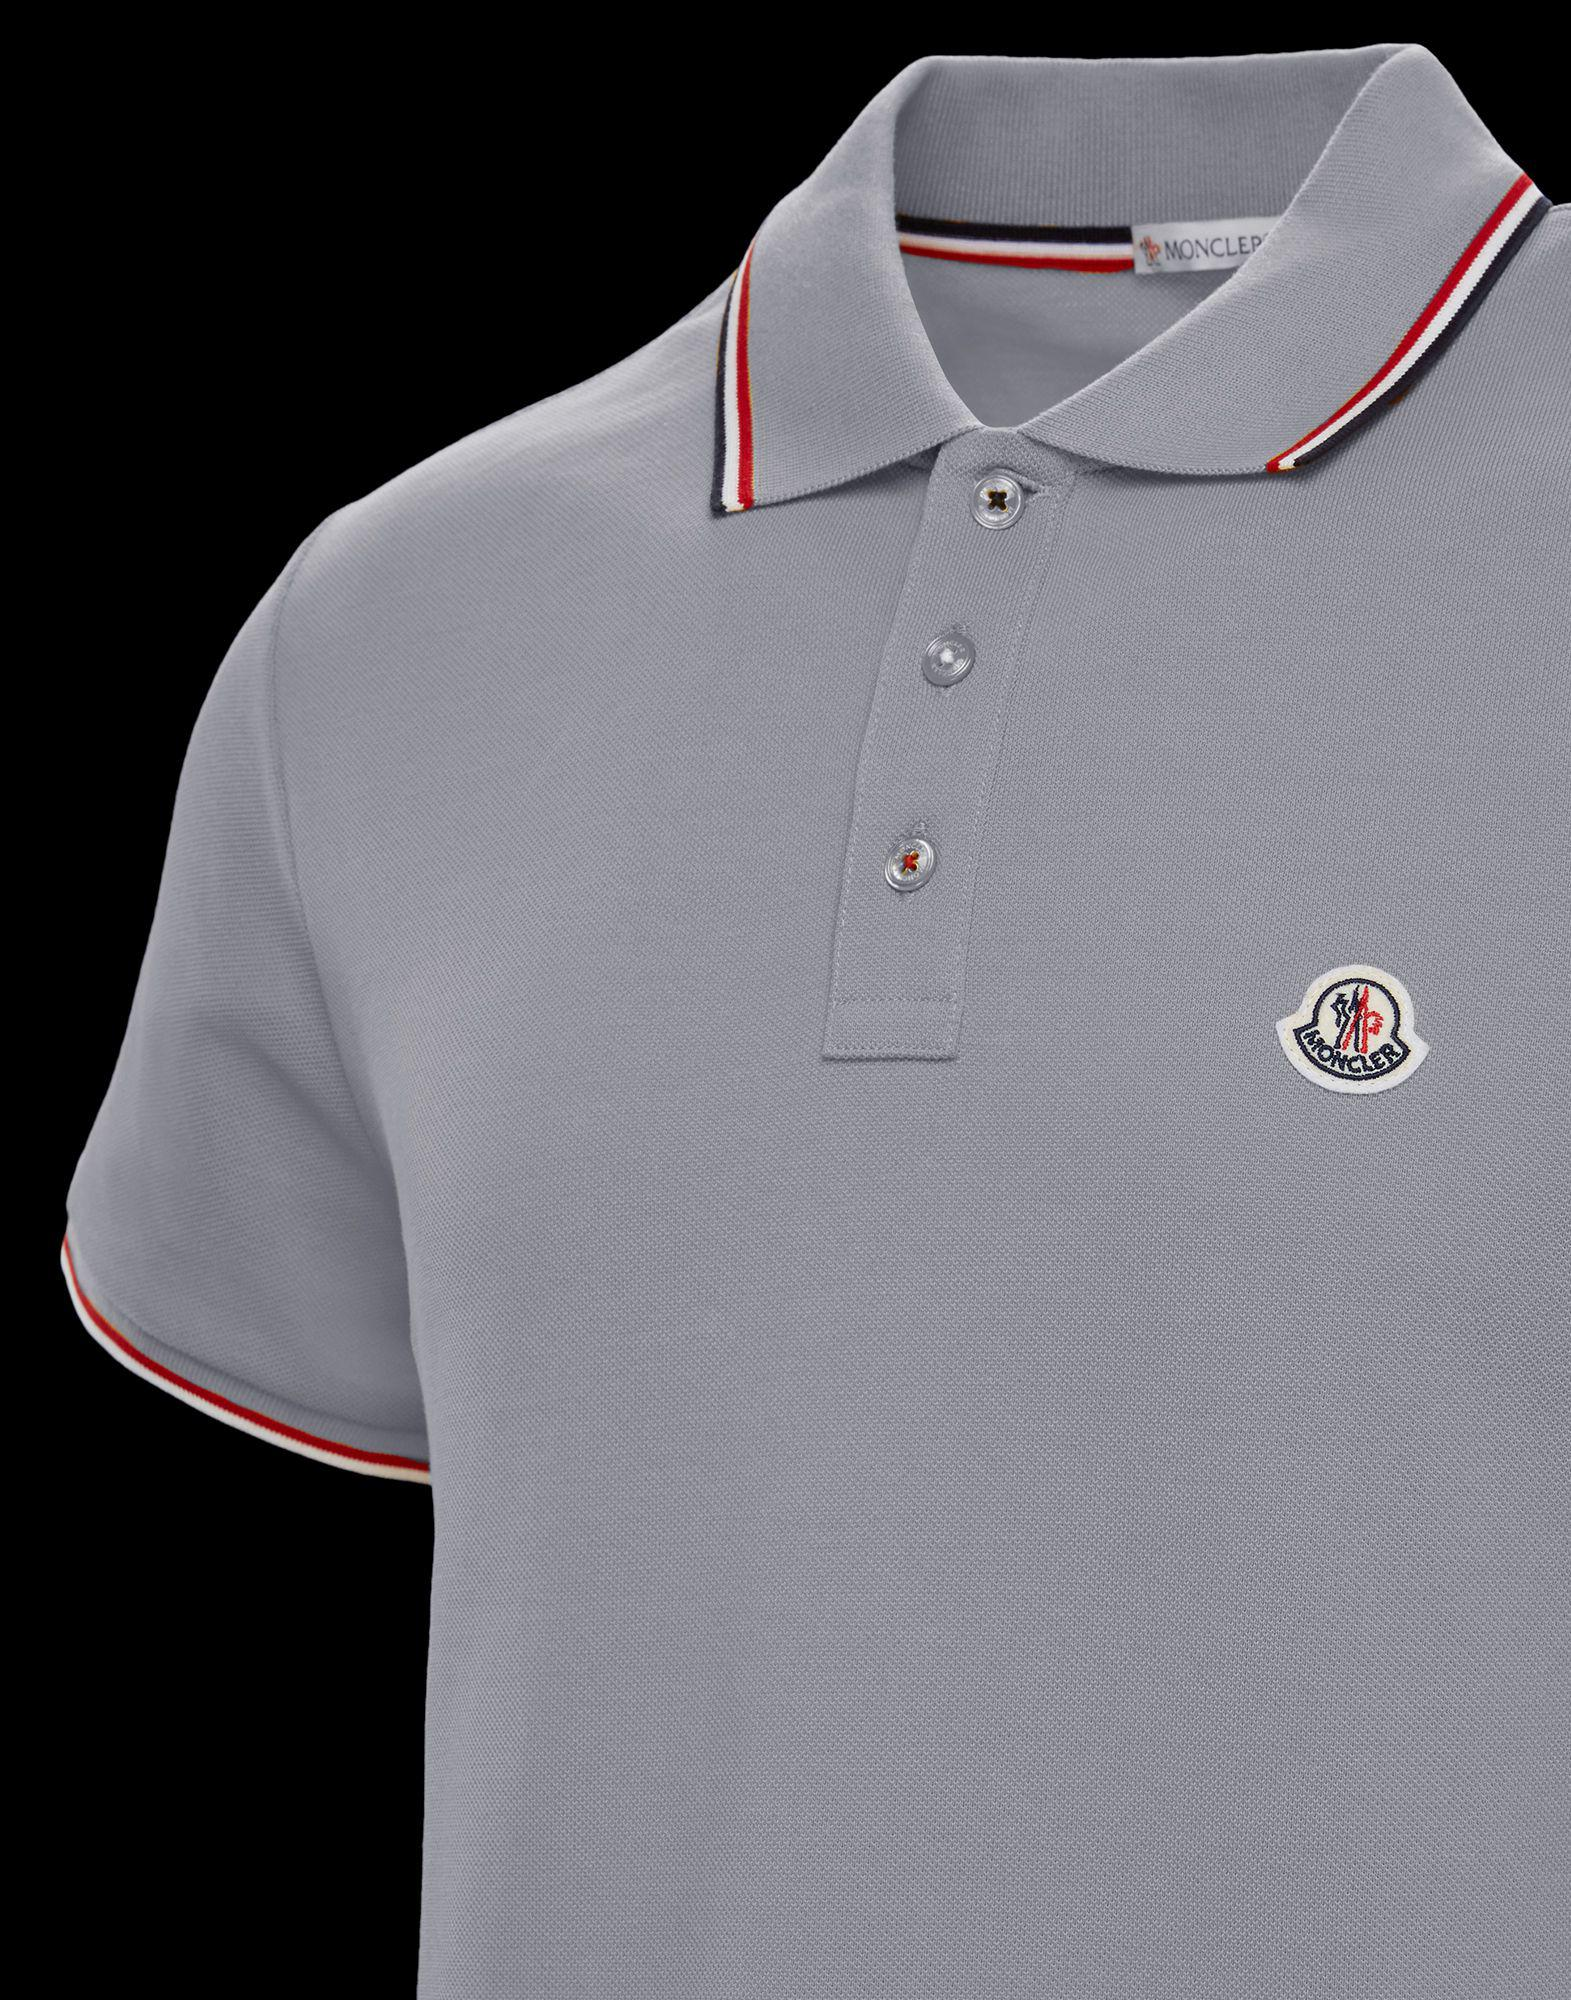 66b95d68b Lyst - Moncler Polo Shirt in Gray for Men